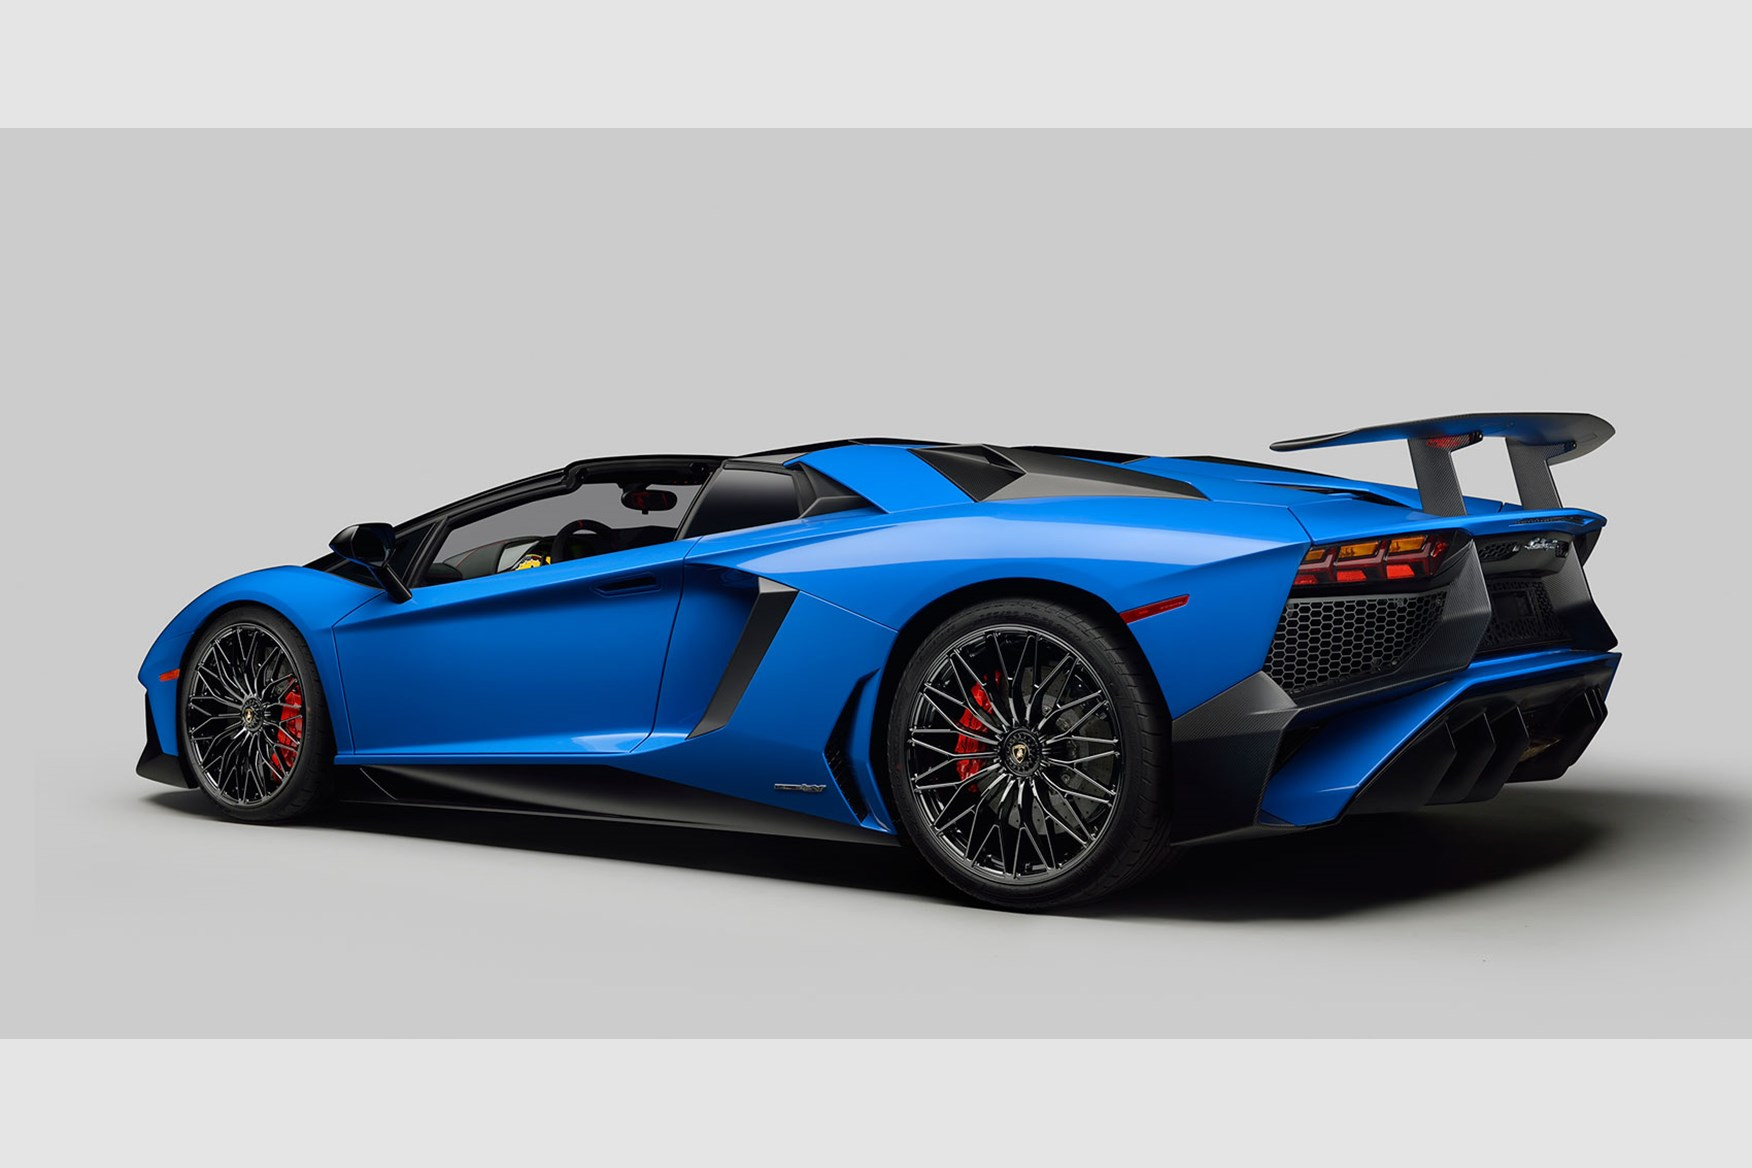 2018 lamborghini aventador sv roadster. brilliant lamborghini lamborghini aventador sv roadsteru0027s unveil at pebble beach midmounted  65litre v12 offers 740bhp to 2018 lamborghini aventador sv roadster